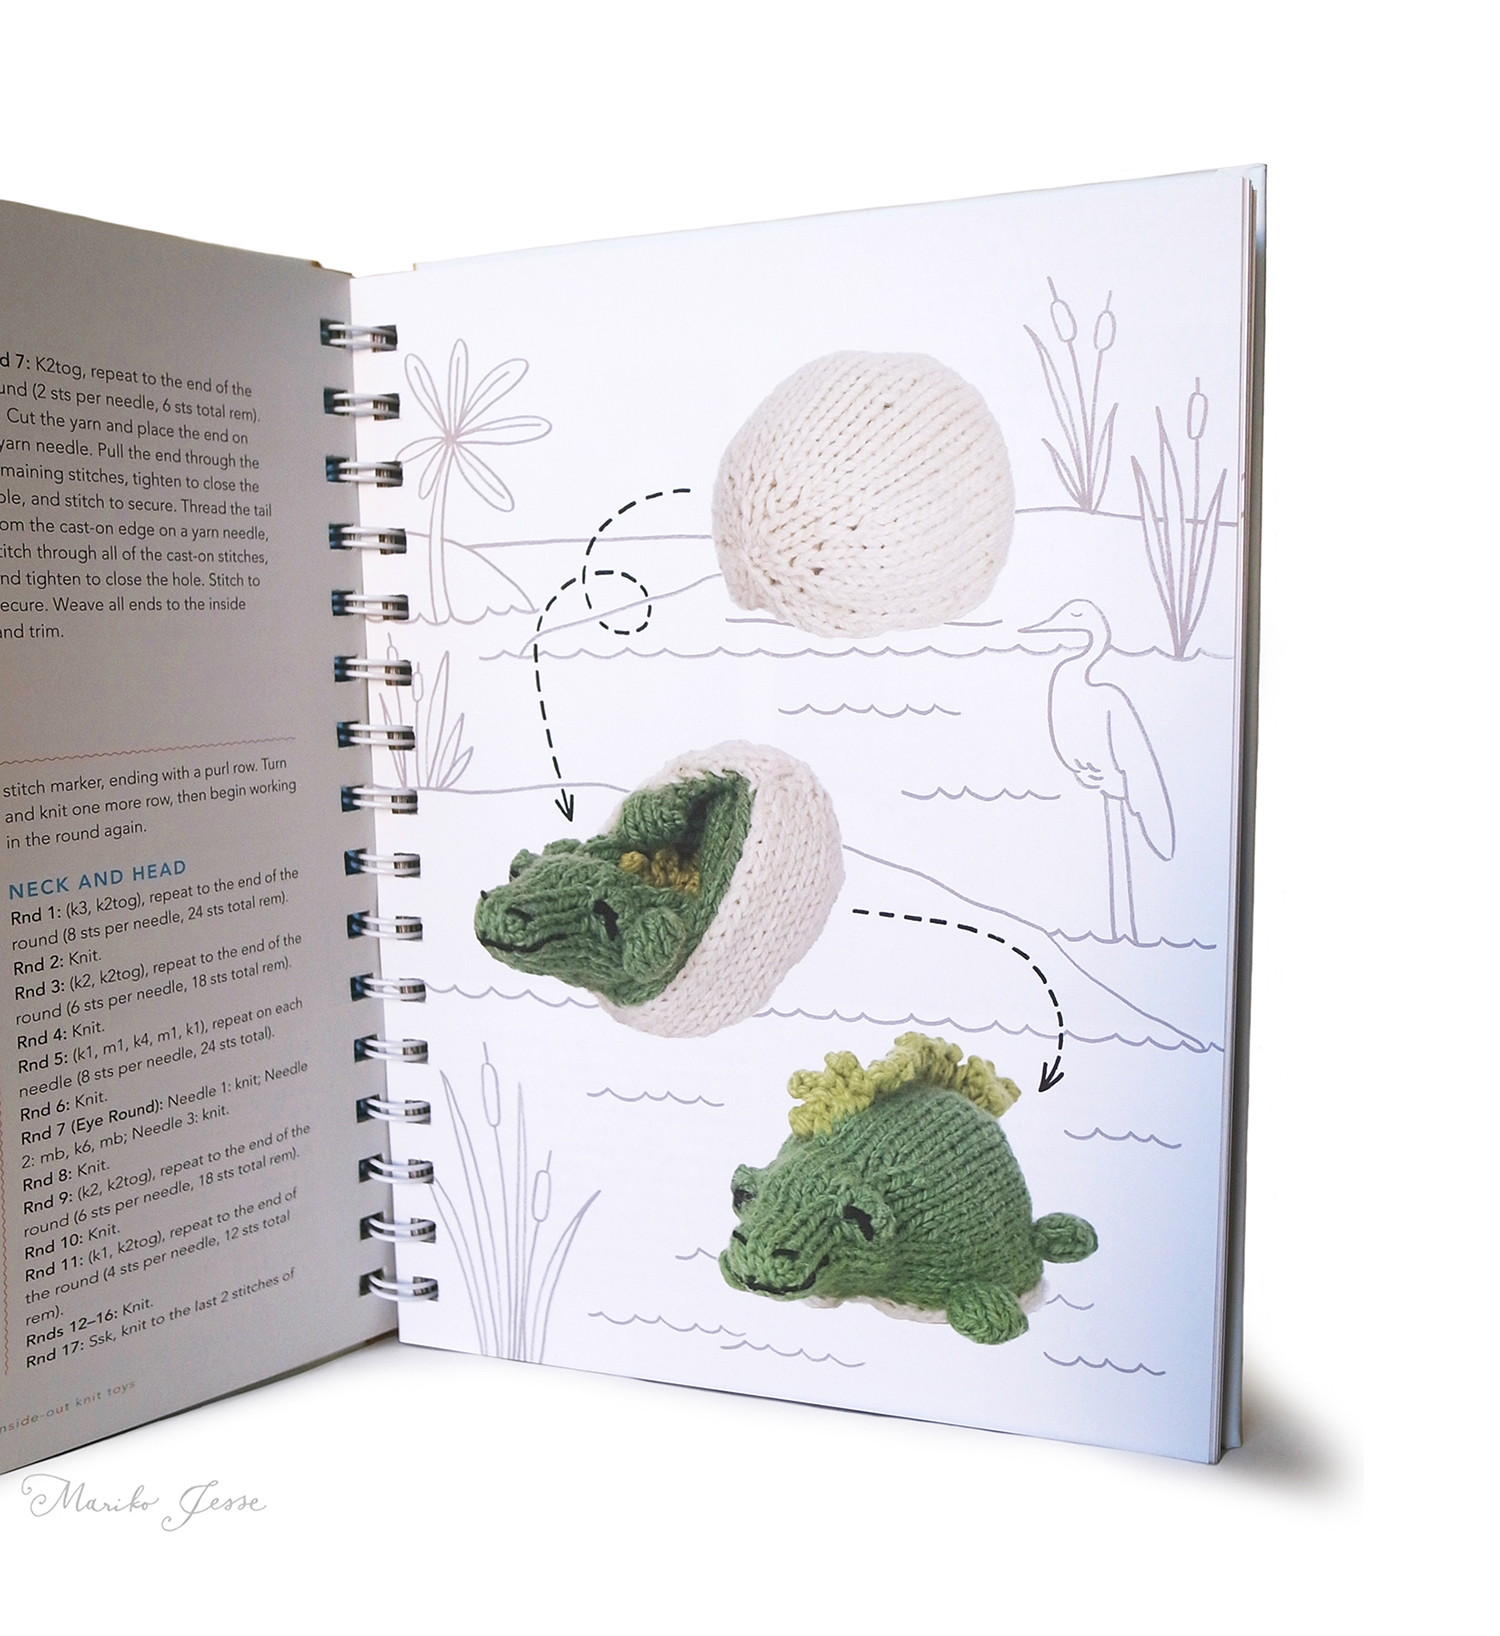 Topsy-turvy Inside-out knit toys book